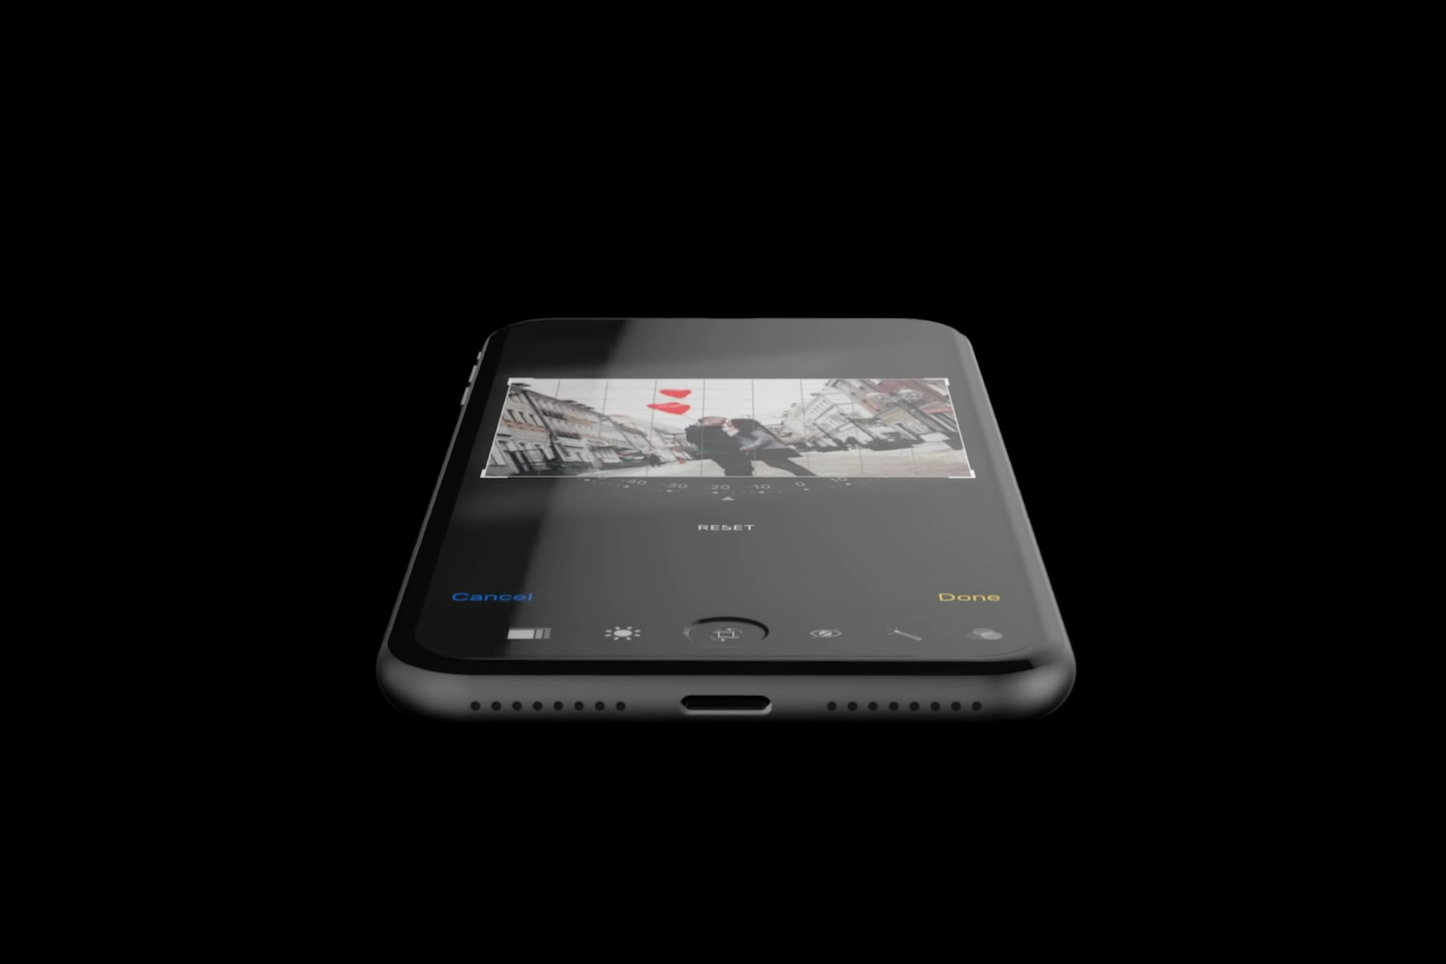 iphone8-concept-image-2.png